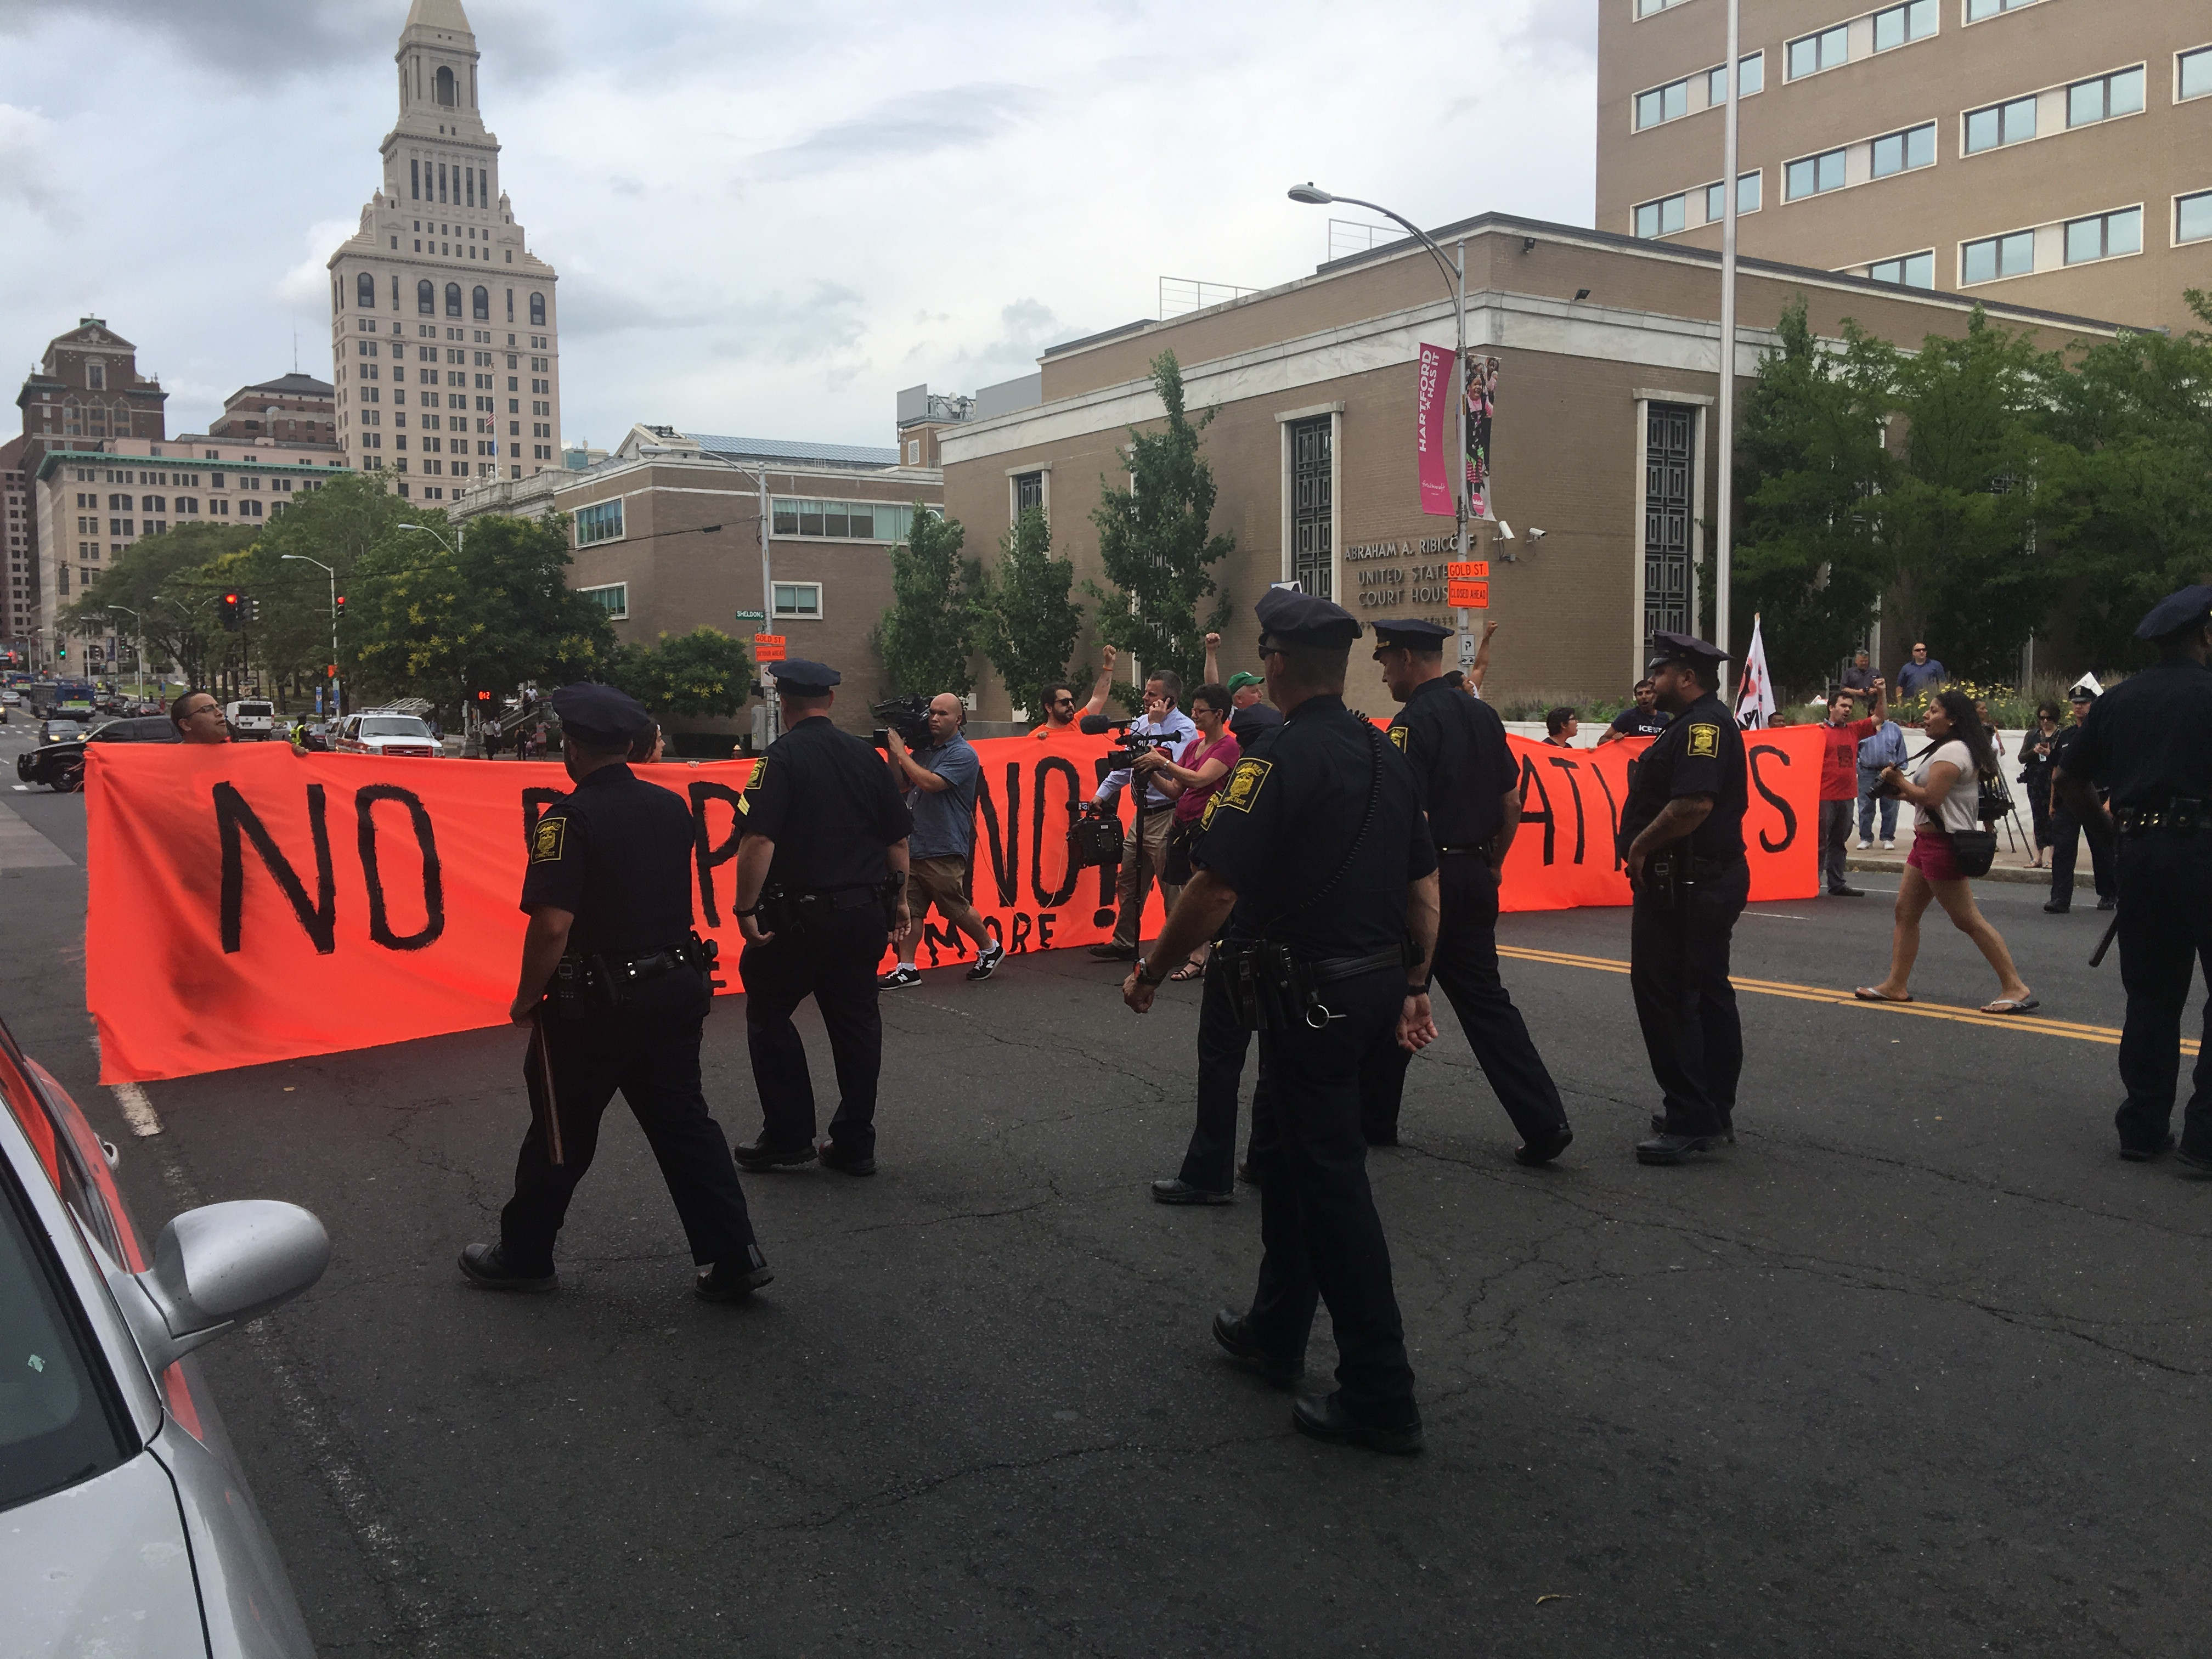 Protesters block Hartford's Main Street over immigration ruling